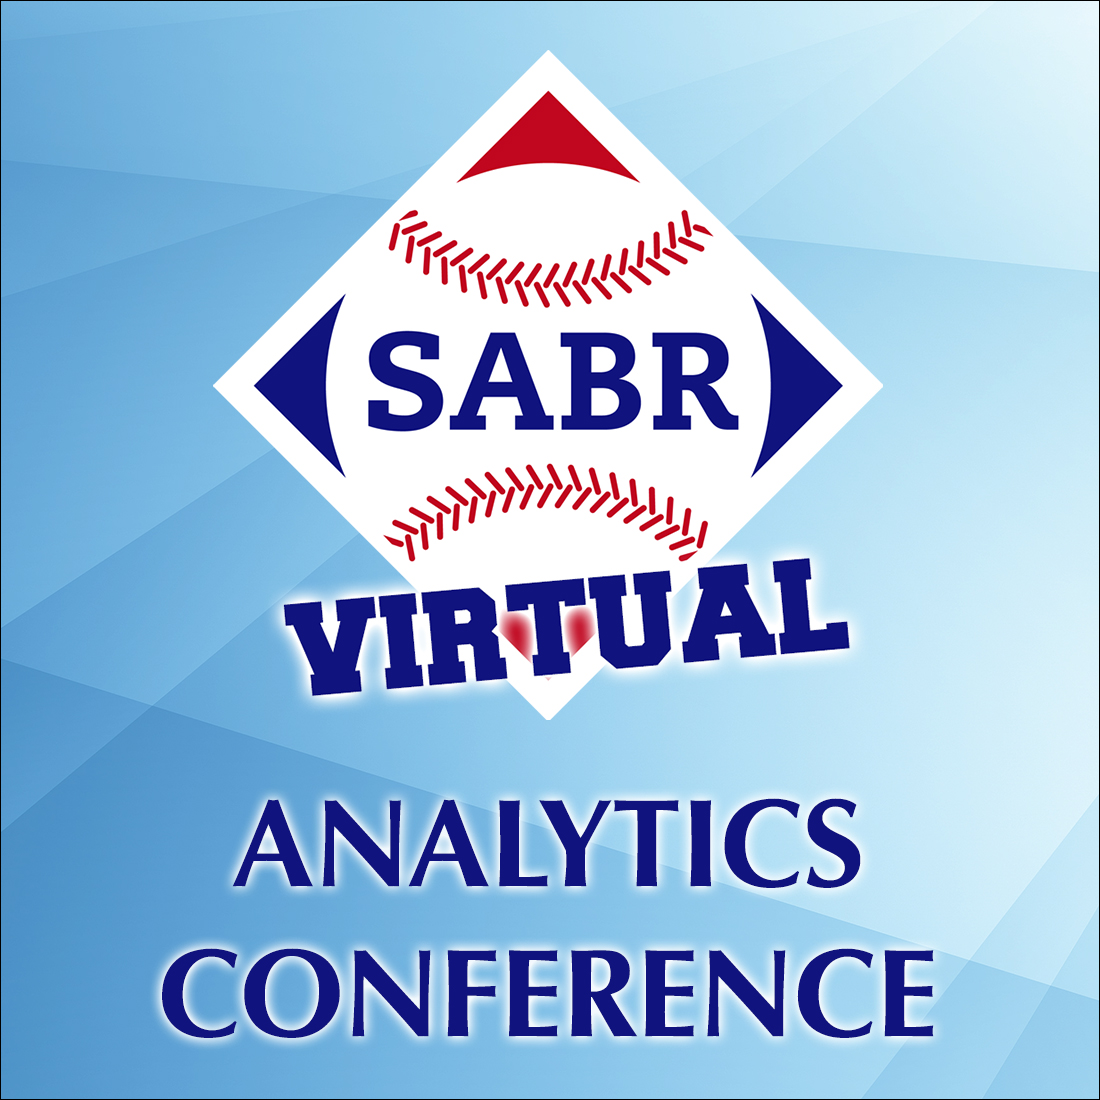 SABR Virtual Analytics Conference